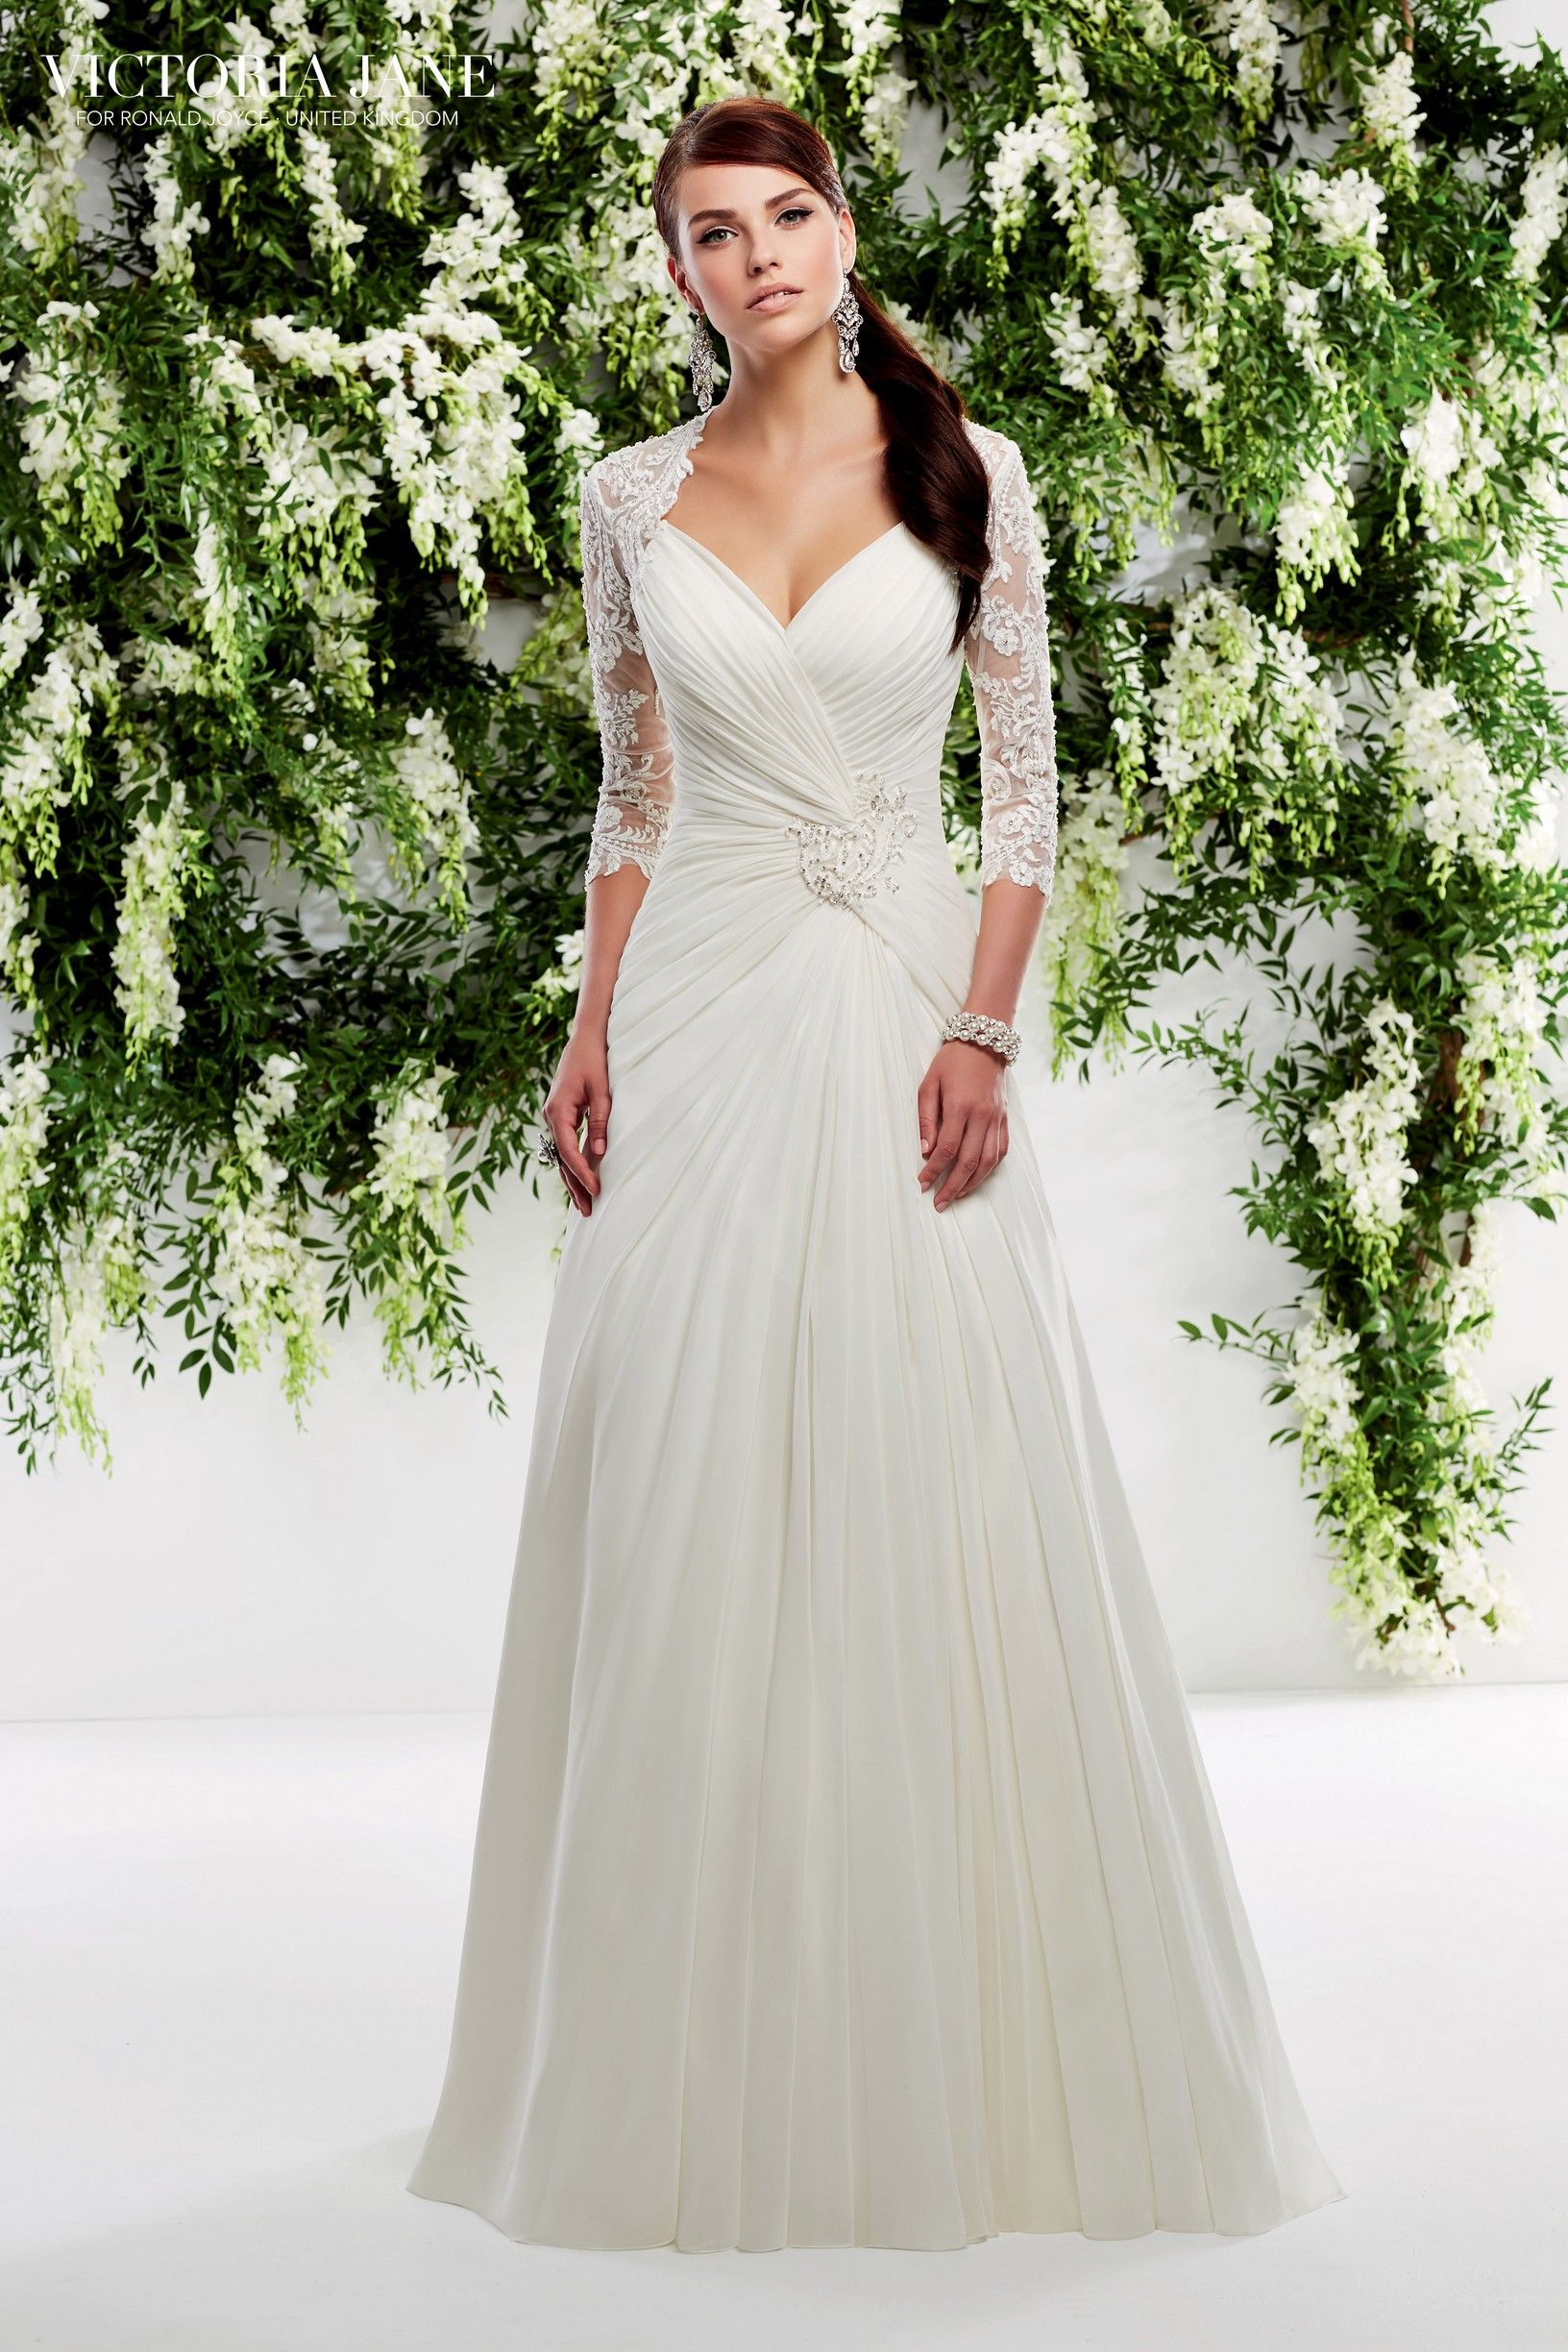 RONALD JOYCE INTERNATIONAL Wedding dresses and bridal gowns